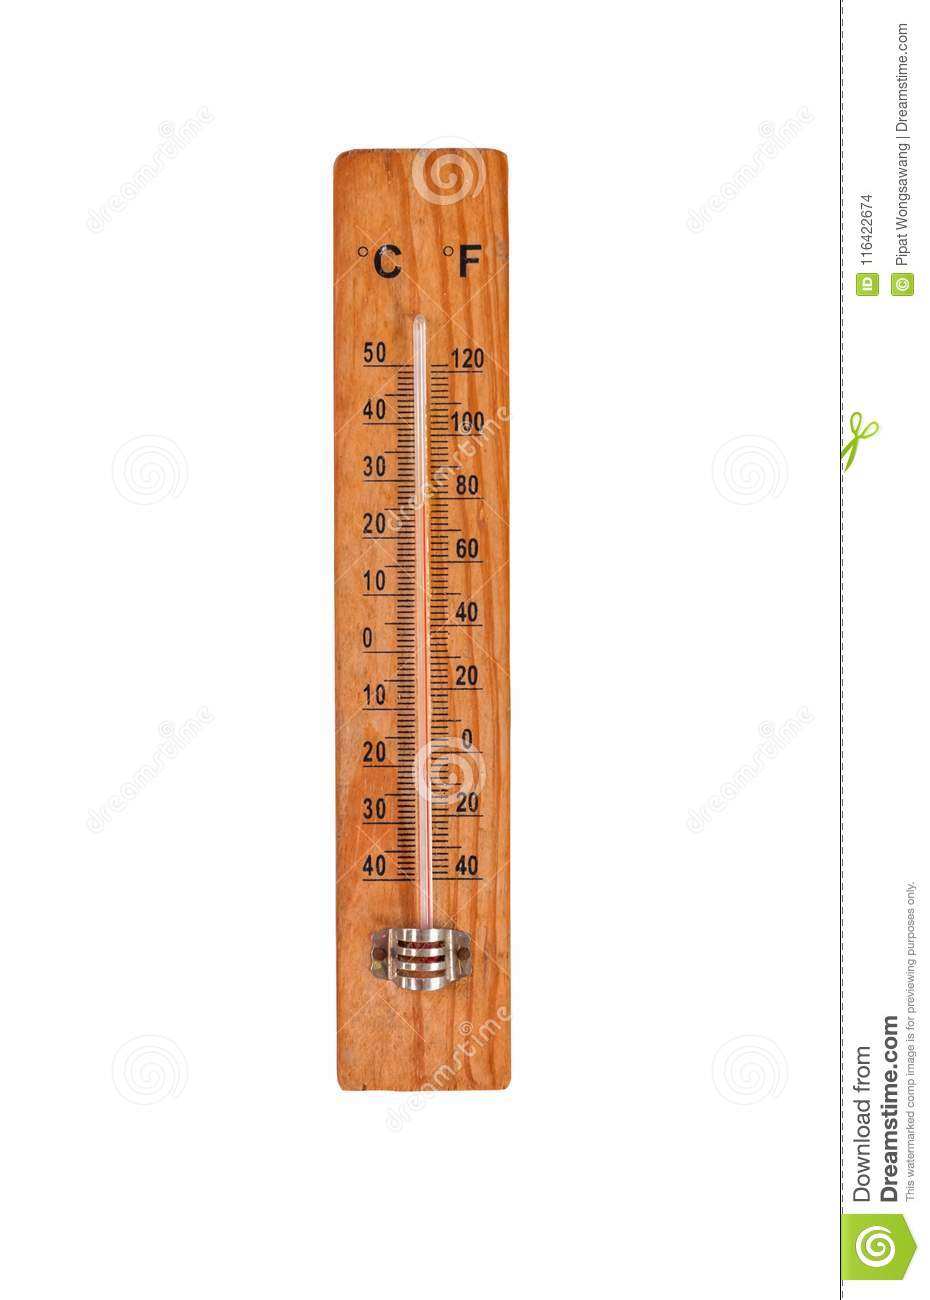 thermometer on wooden base with celsius and fahrenheit degrees scale